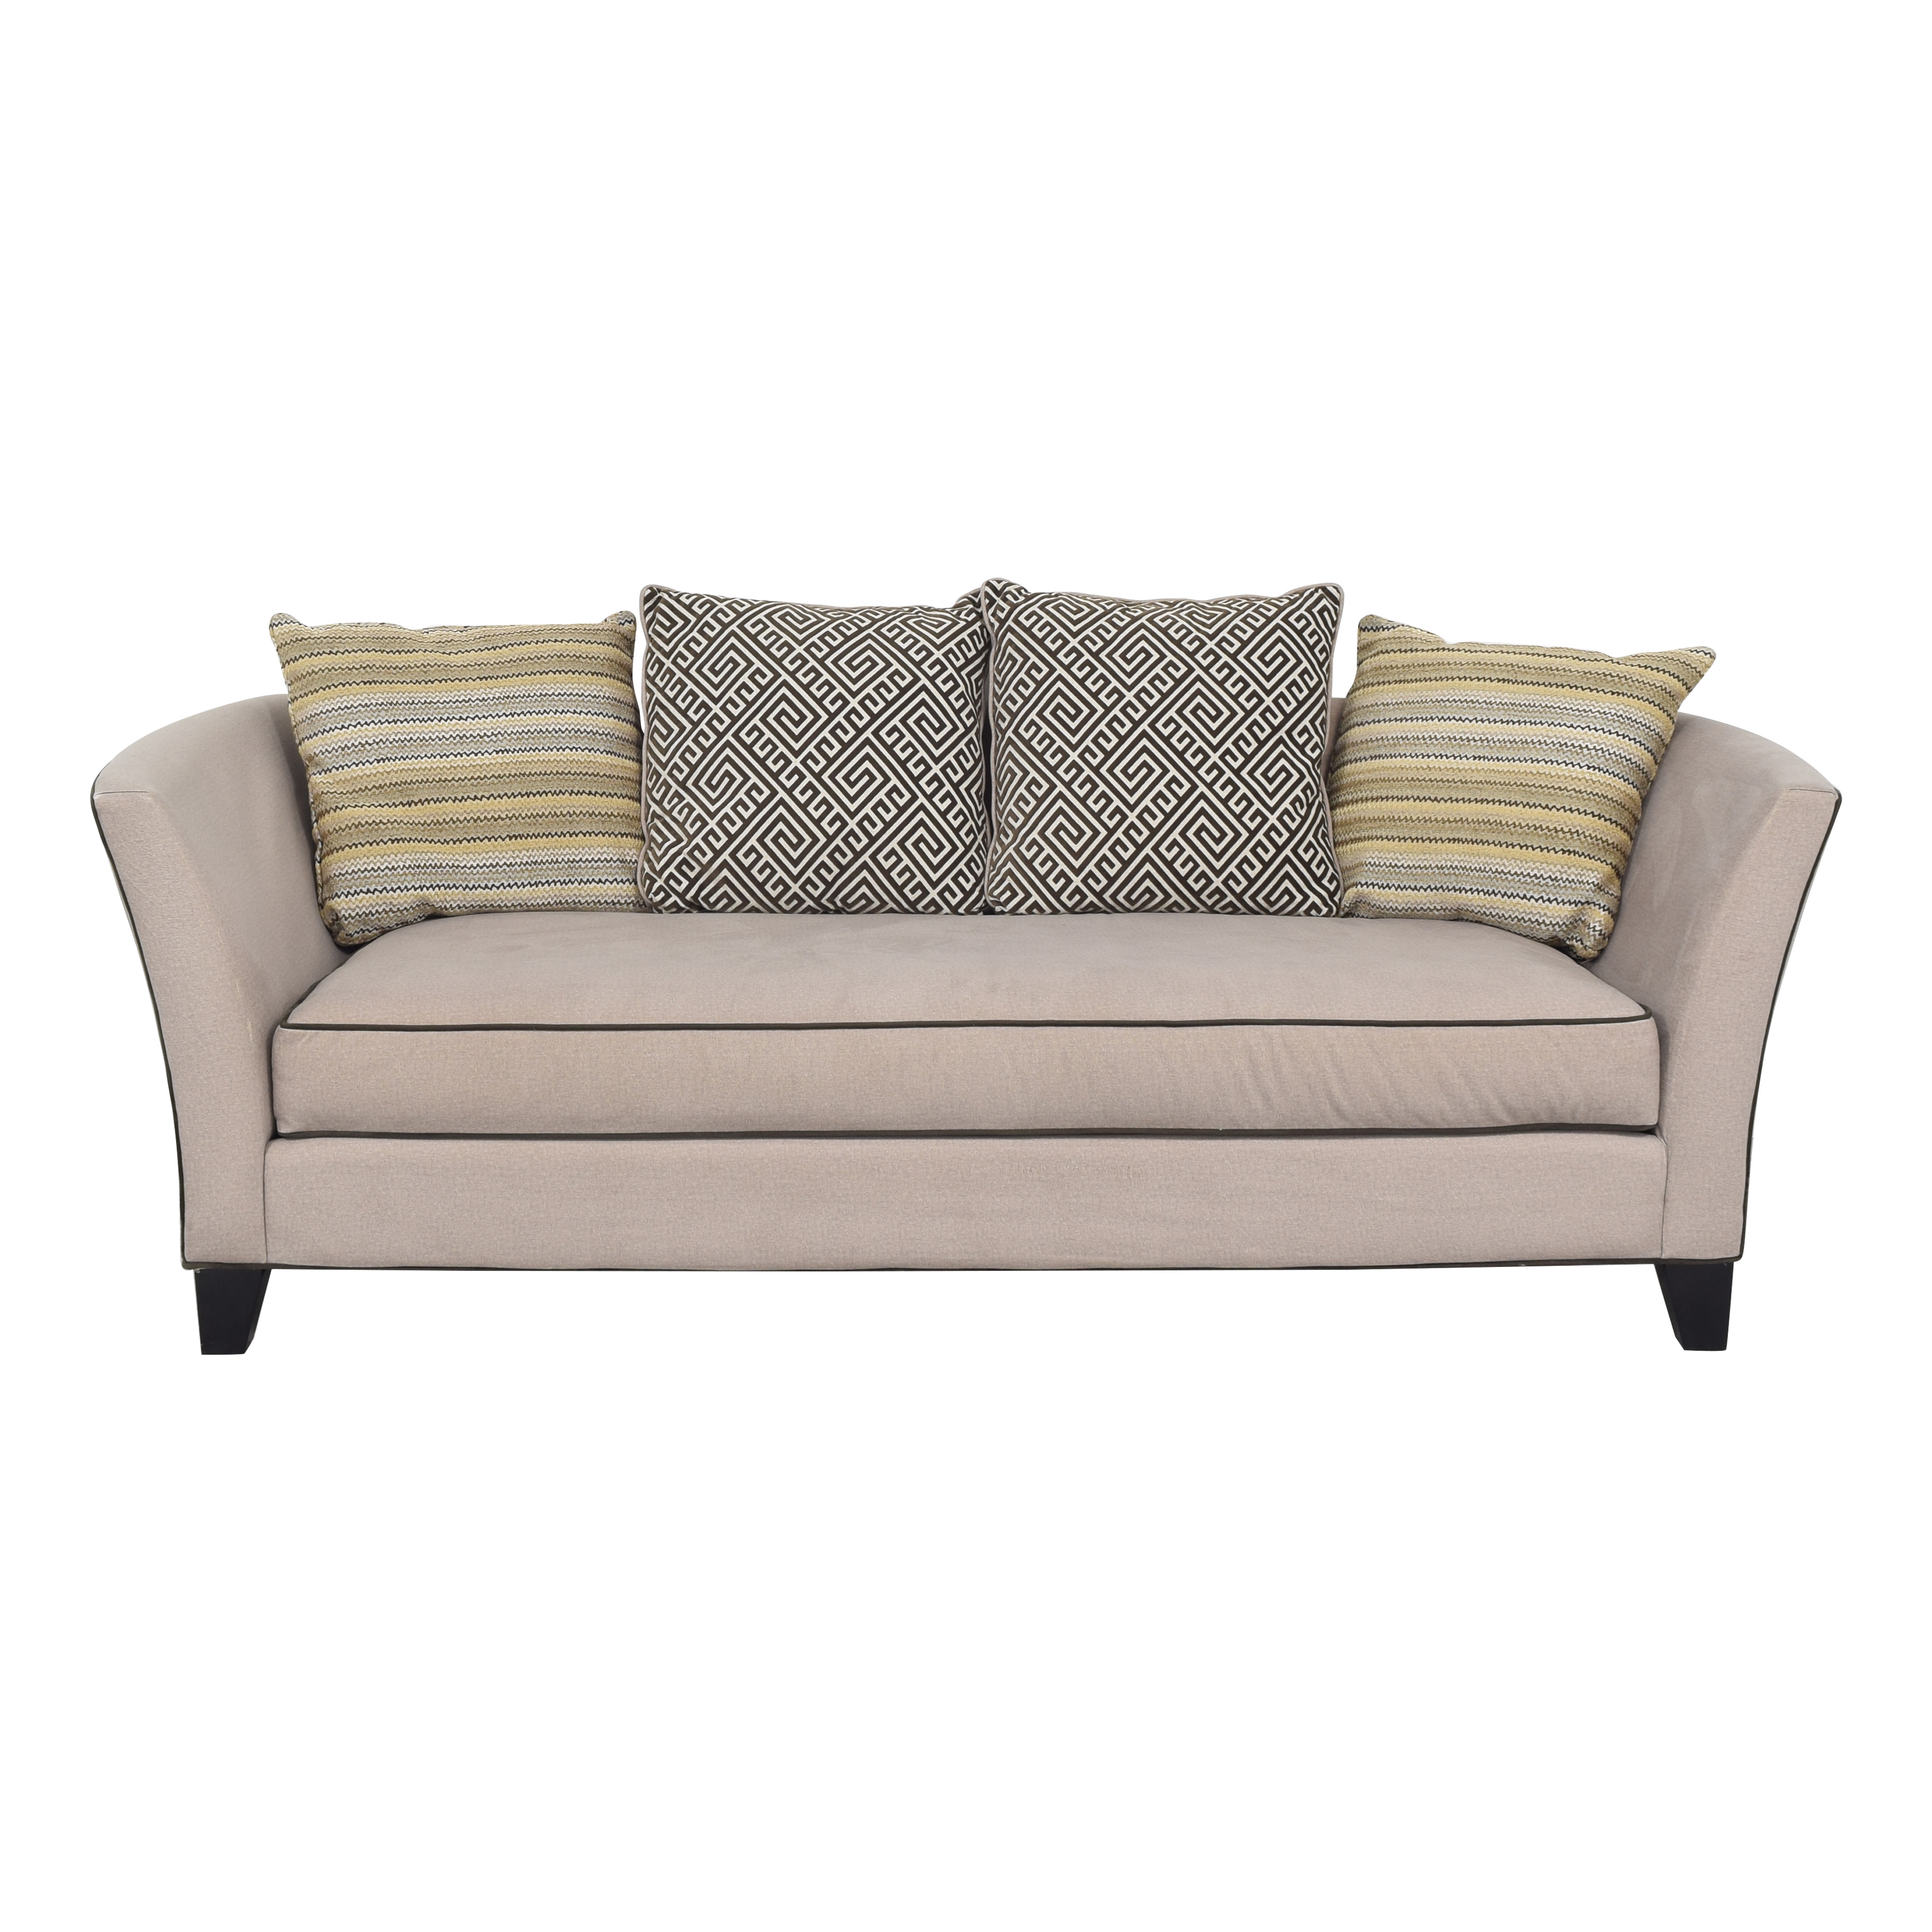 Raymour & Flanigan Raymour & Flanigan Single Cushion Sofa coupon